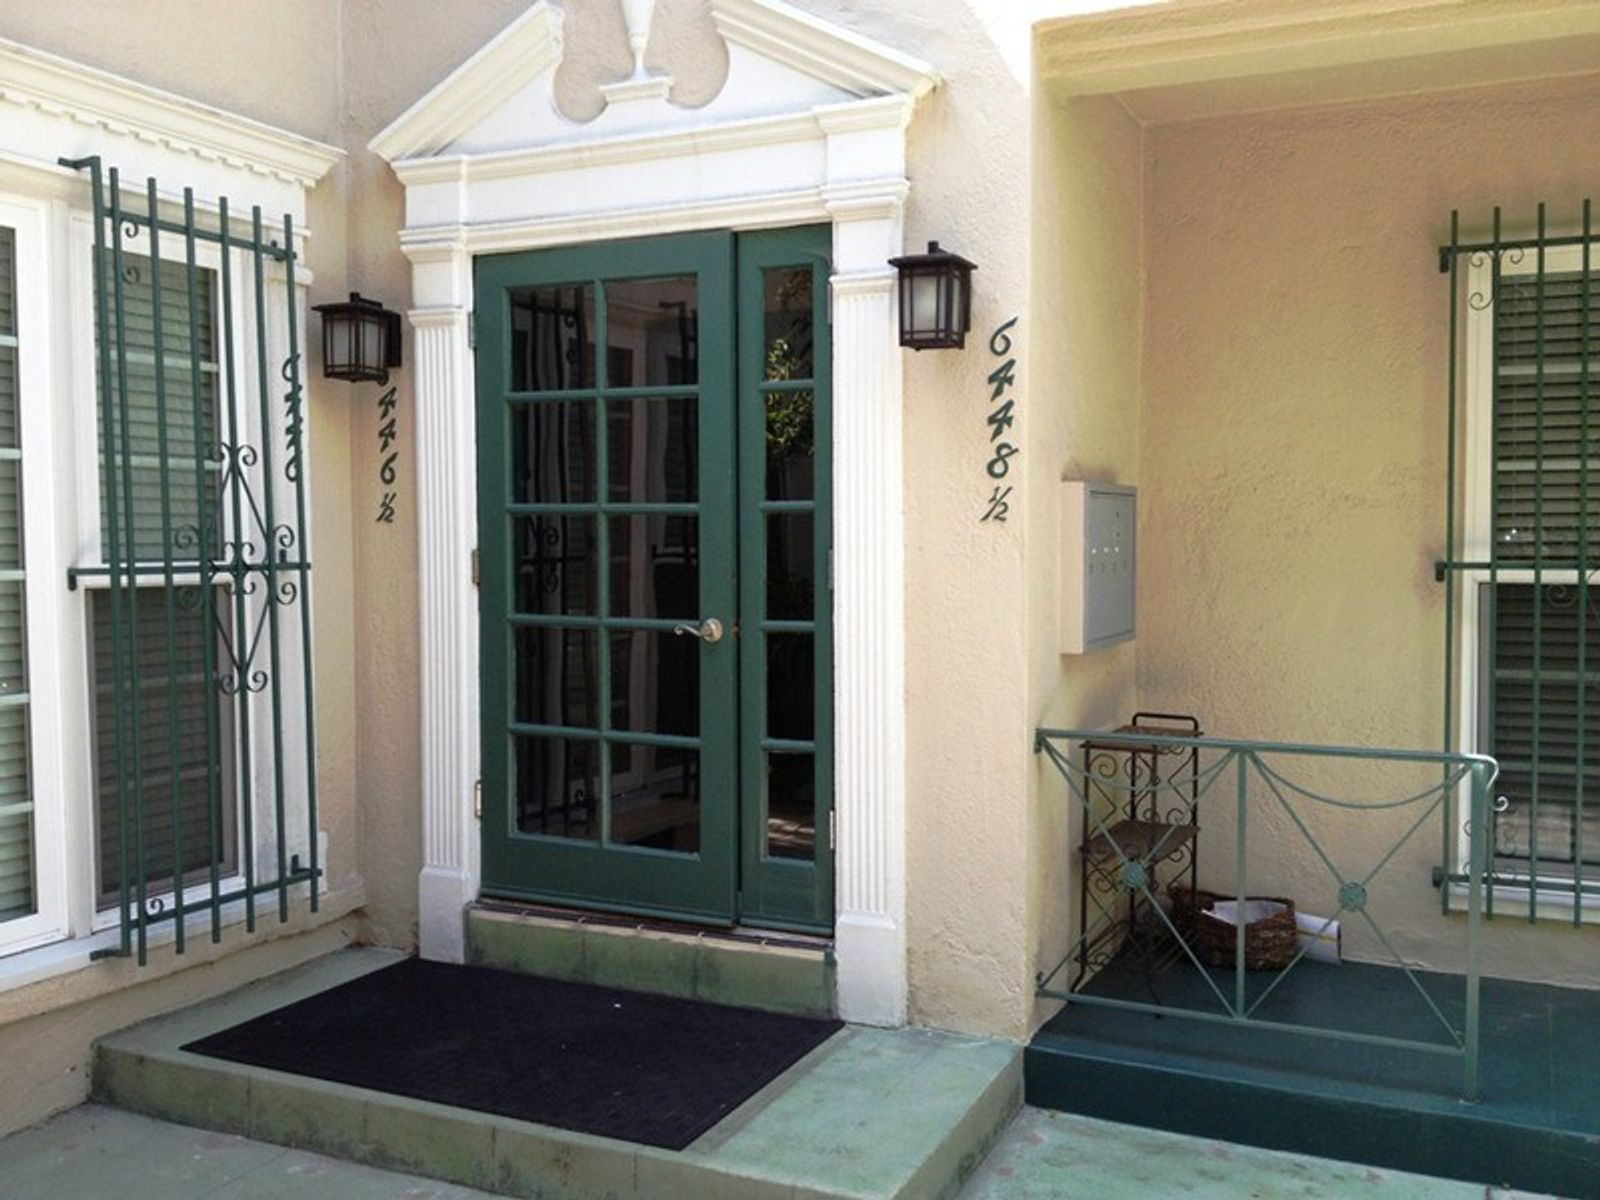 Elegant 4-Plex, Beverly Hills Adjacent, Los Angeles CA Multi-Family - Los Angeles Real Estate